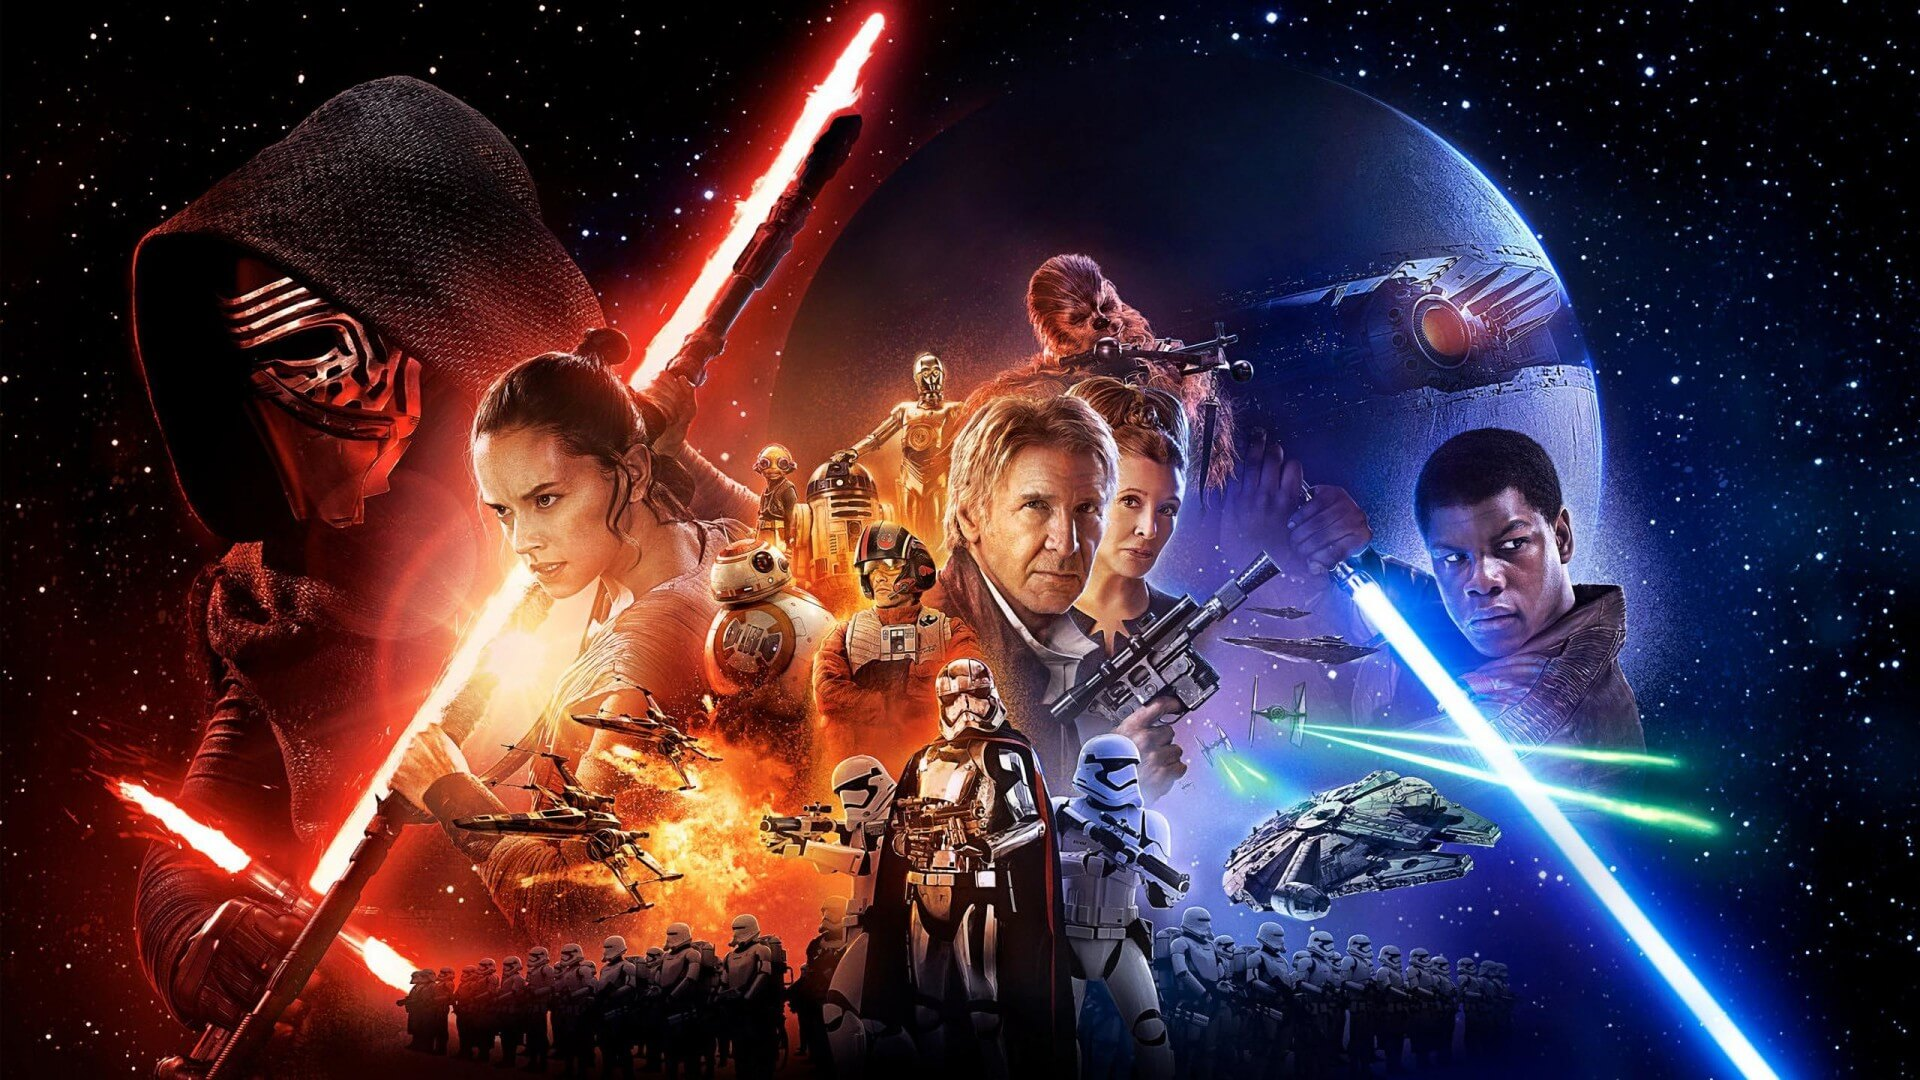 Star Wars: The Force Awakens Makes $1 Billion In Record 12 Days